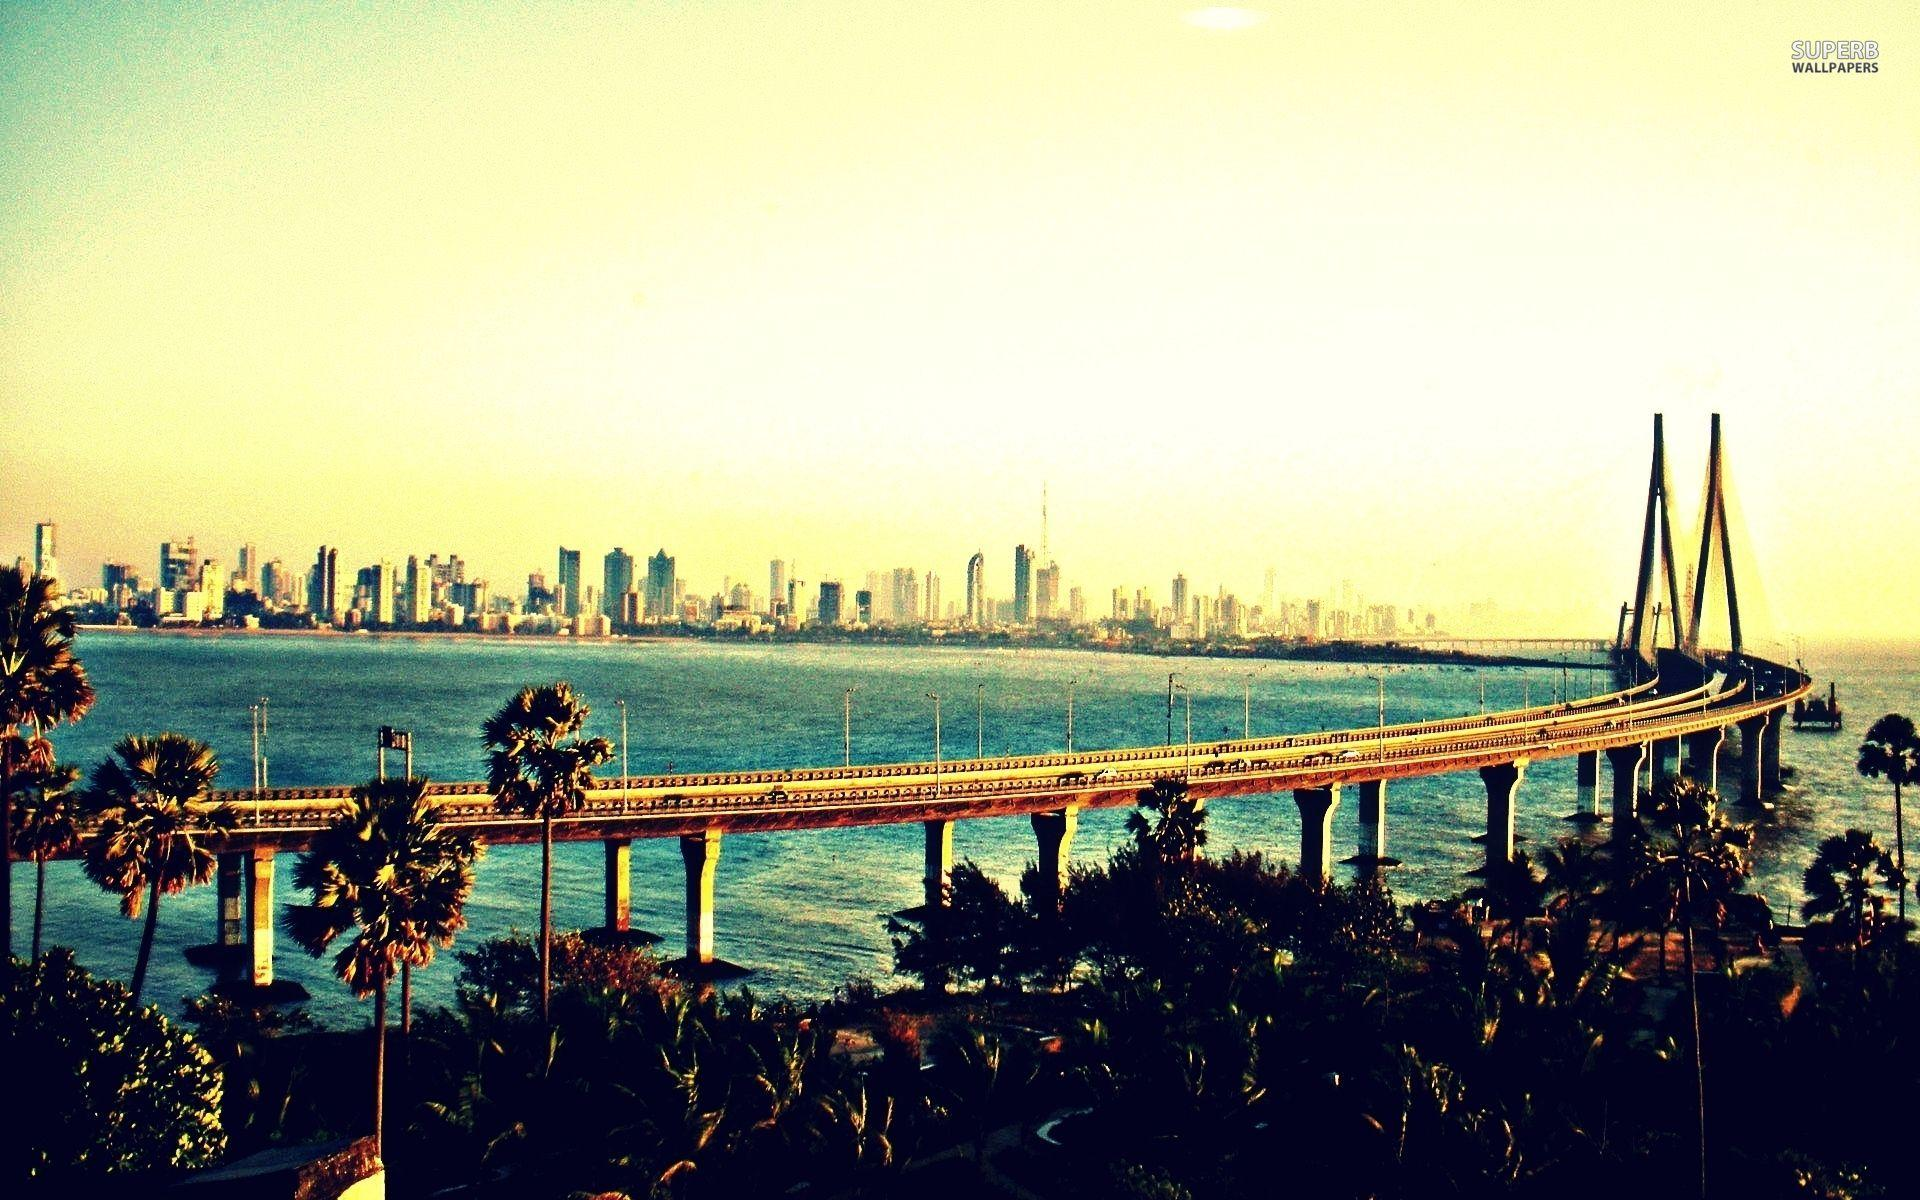 Mumbai Wallpapers, Mumbai High Quality